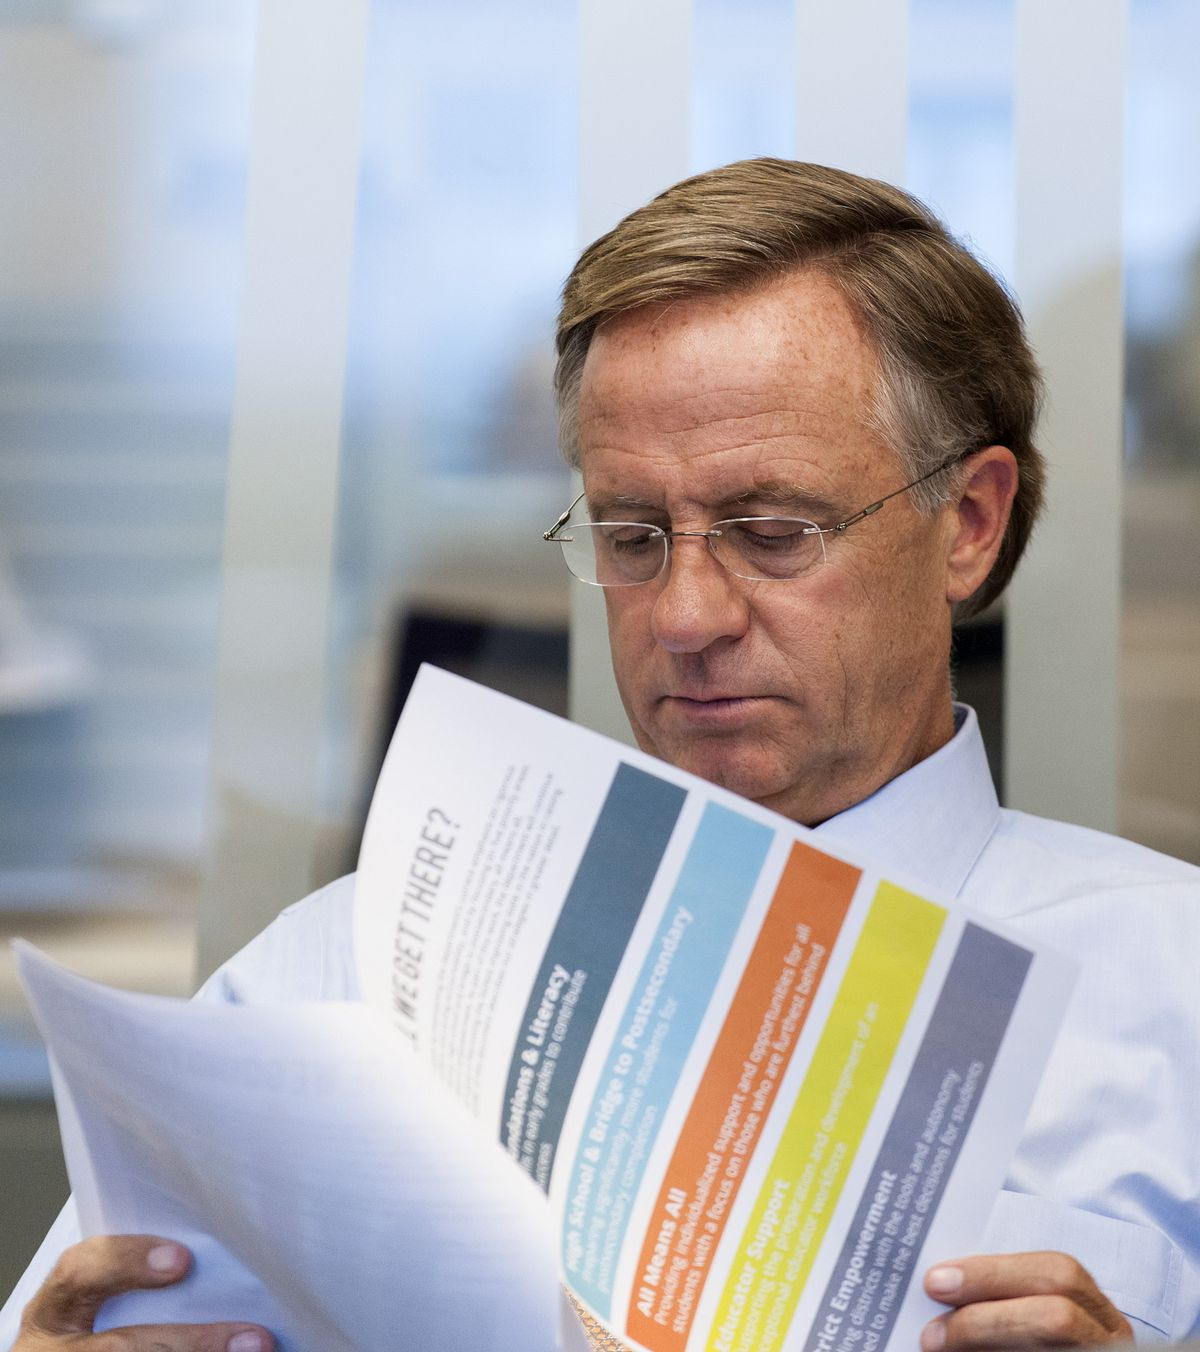 Gov. Bill Haslam reviews the five-year plan during a meeting with top Department of Education officials on Sept. 23.